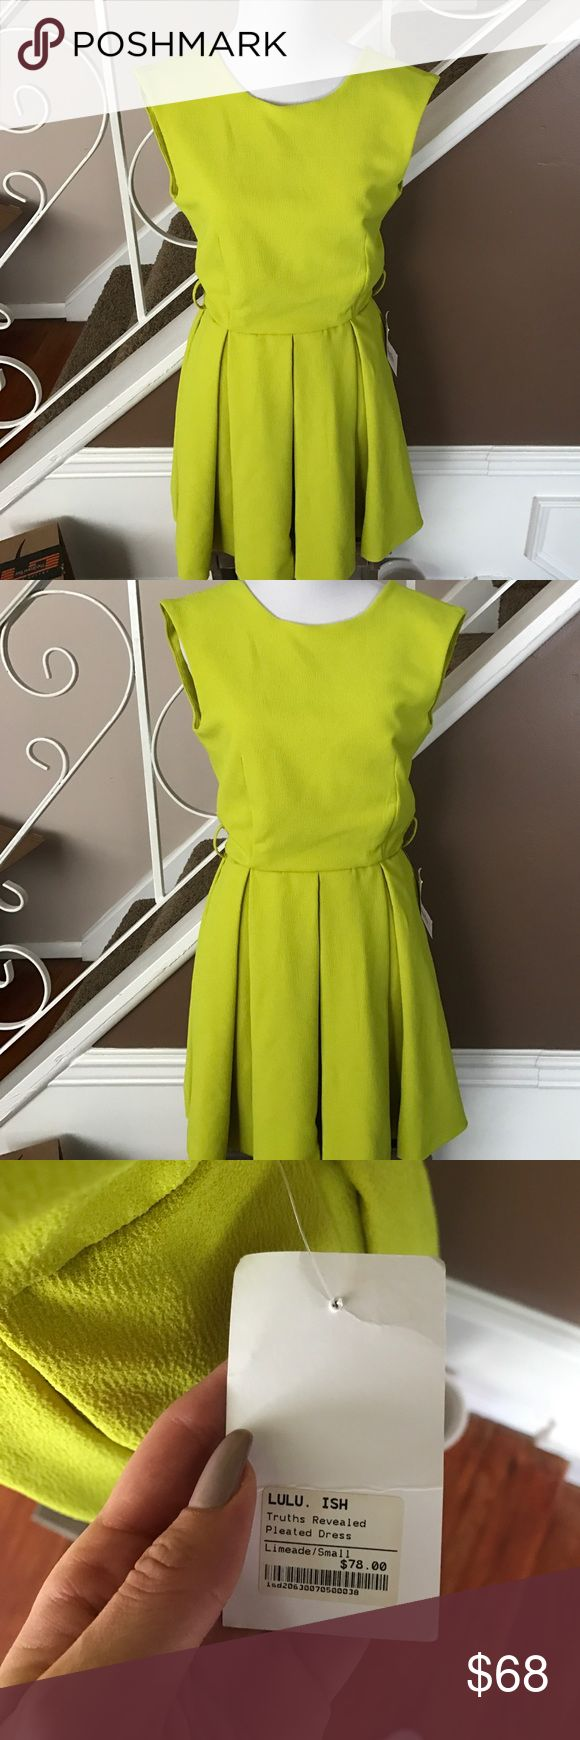 Caribbean Queen Truth Revealed Pleated Dress Caribbean Queen Truth Revealed Pleated Dress in Limeade. Brand new. Purchased at a local boutique. Caribbean Queen Dresses